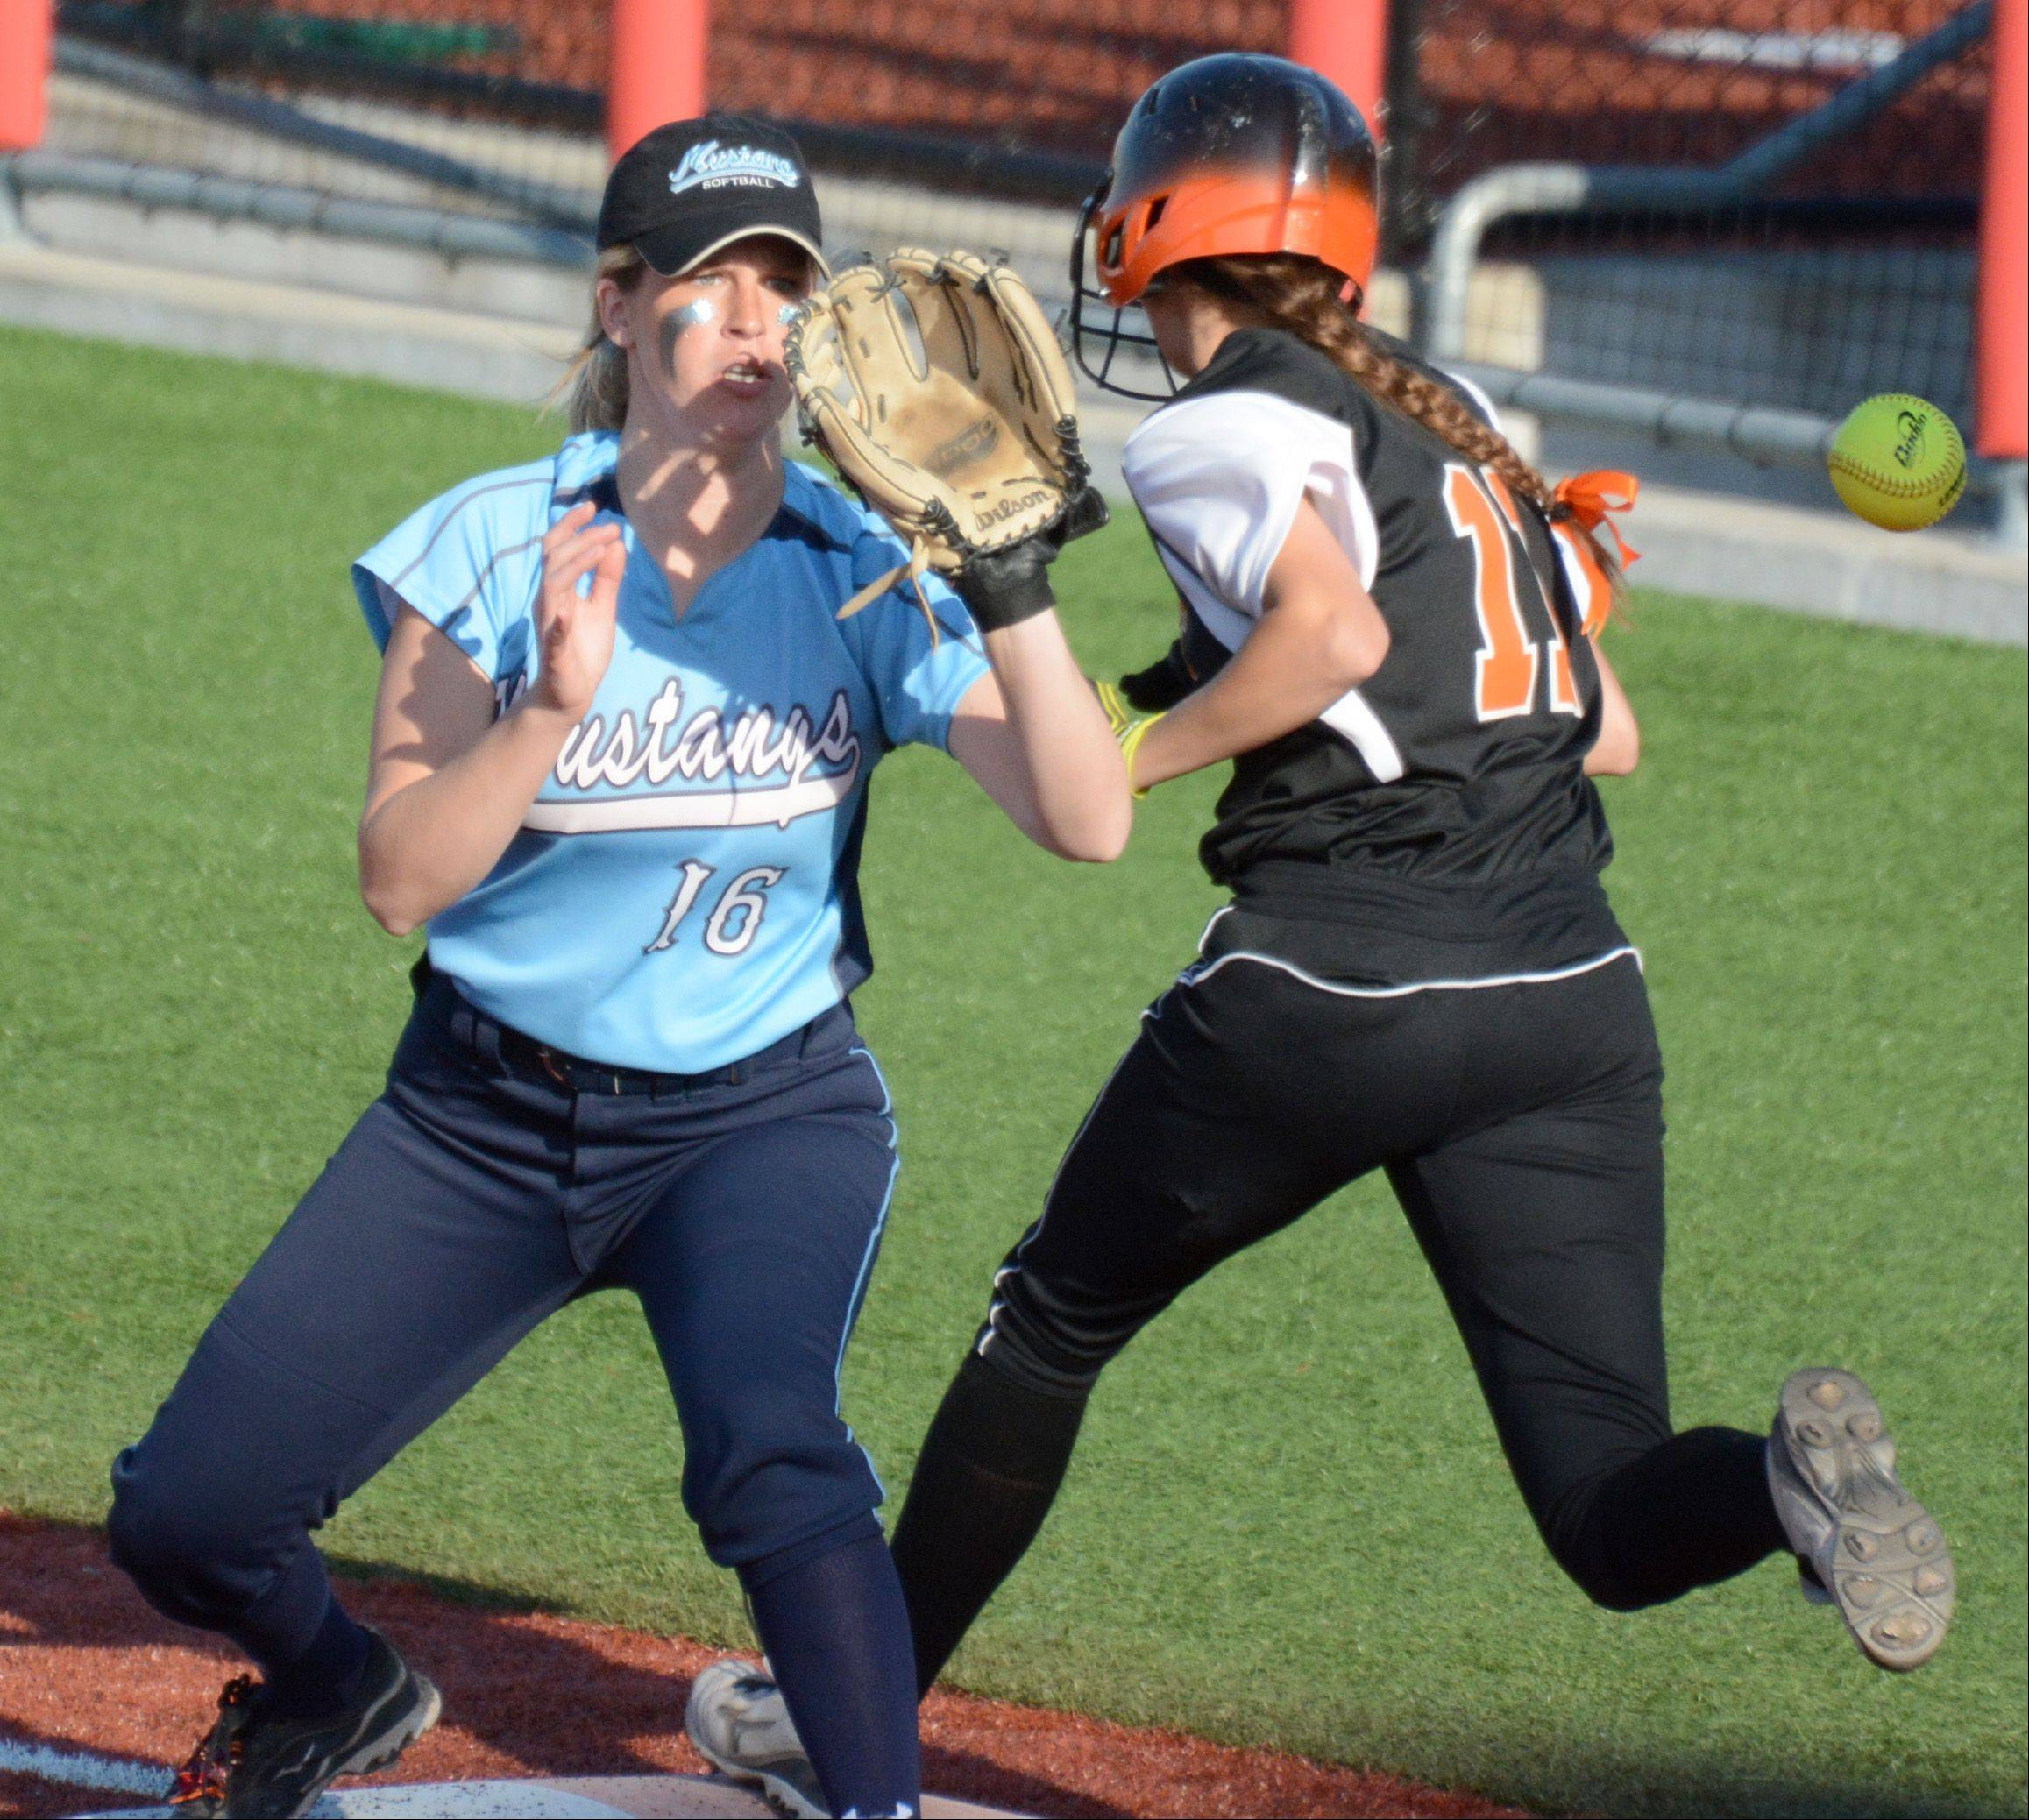 St. Charles East's Tess Hupe outruns a throw to Downers Grove South's Olivia Parks during Monday's Class 4A supersectional softball game in Rosemont.